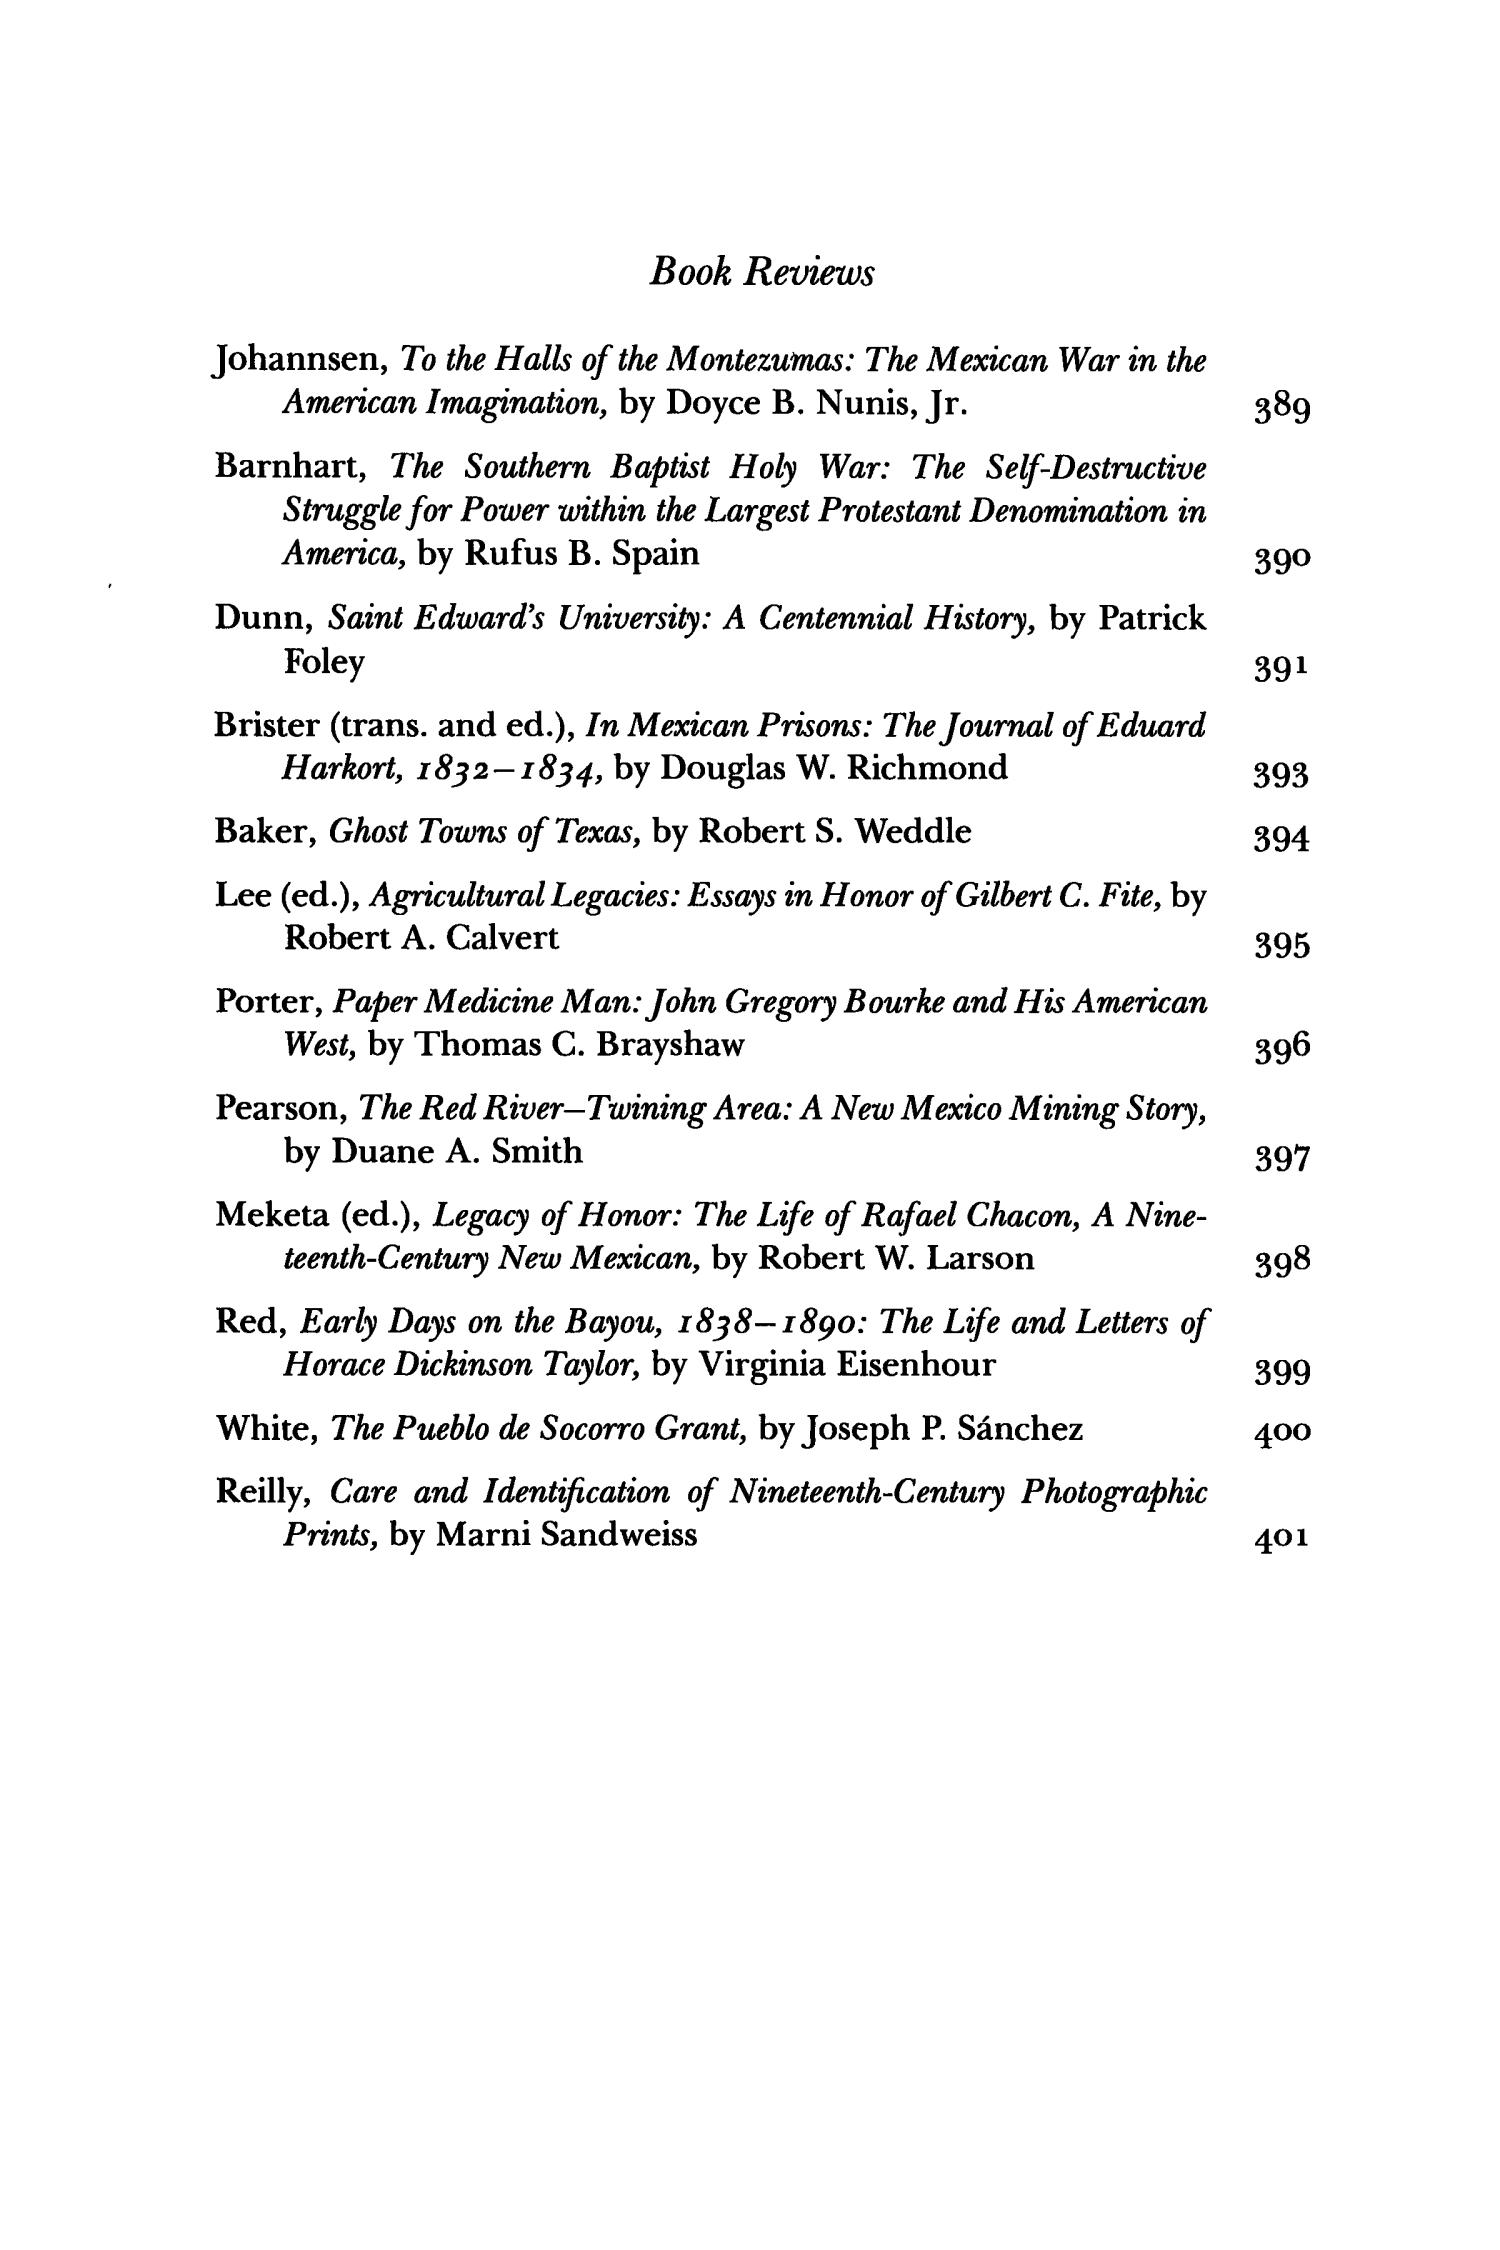 The Southwestern Historical Quarterly, Volume 91, July 1987 - April, 1988                                                                                                      None